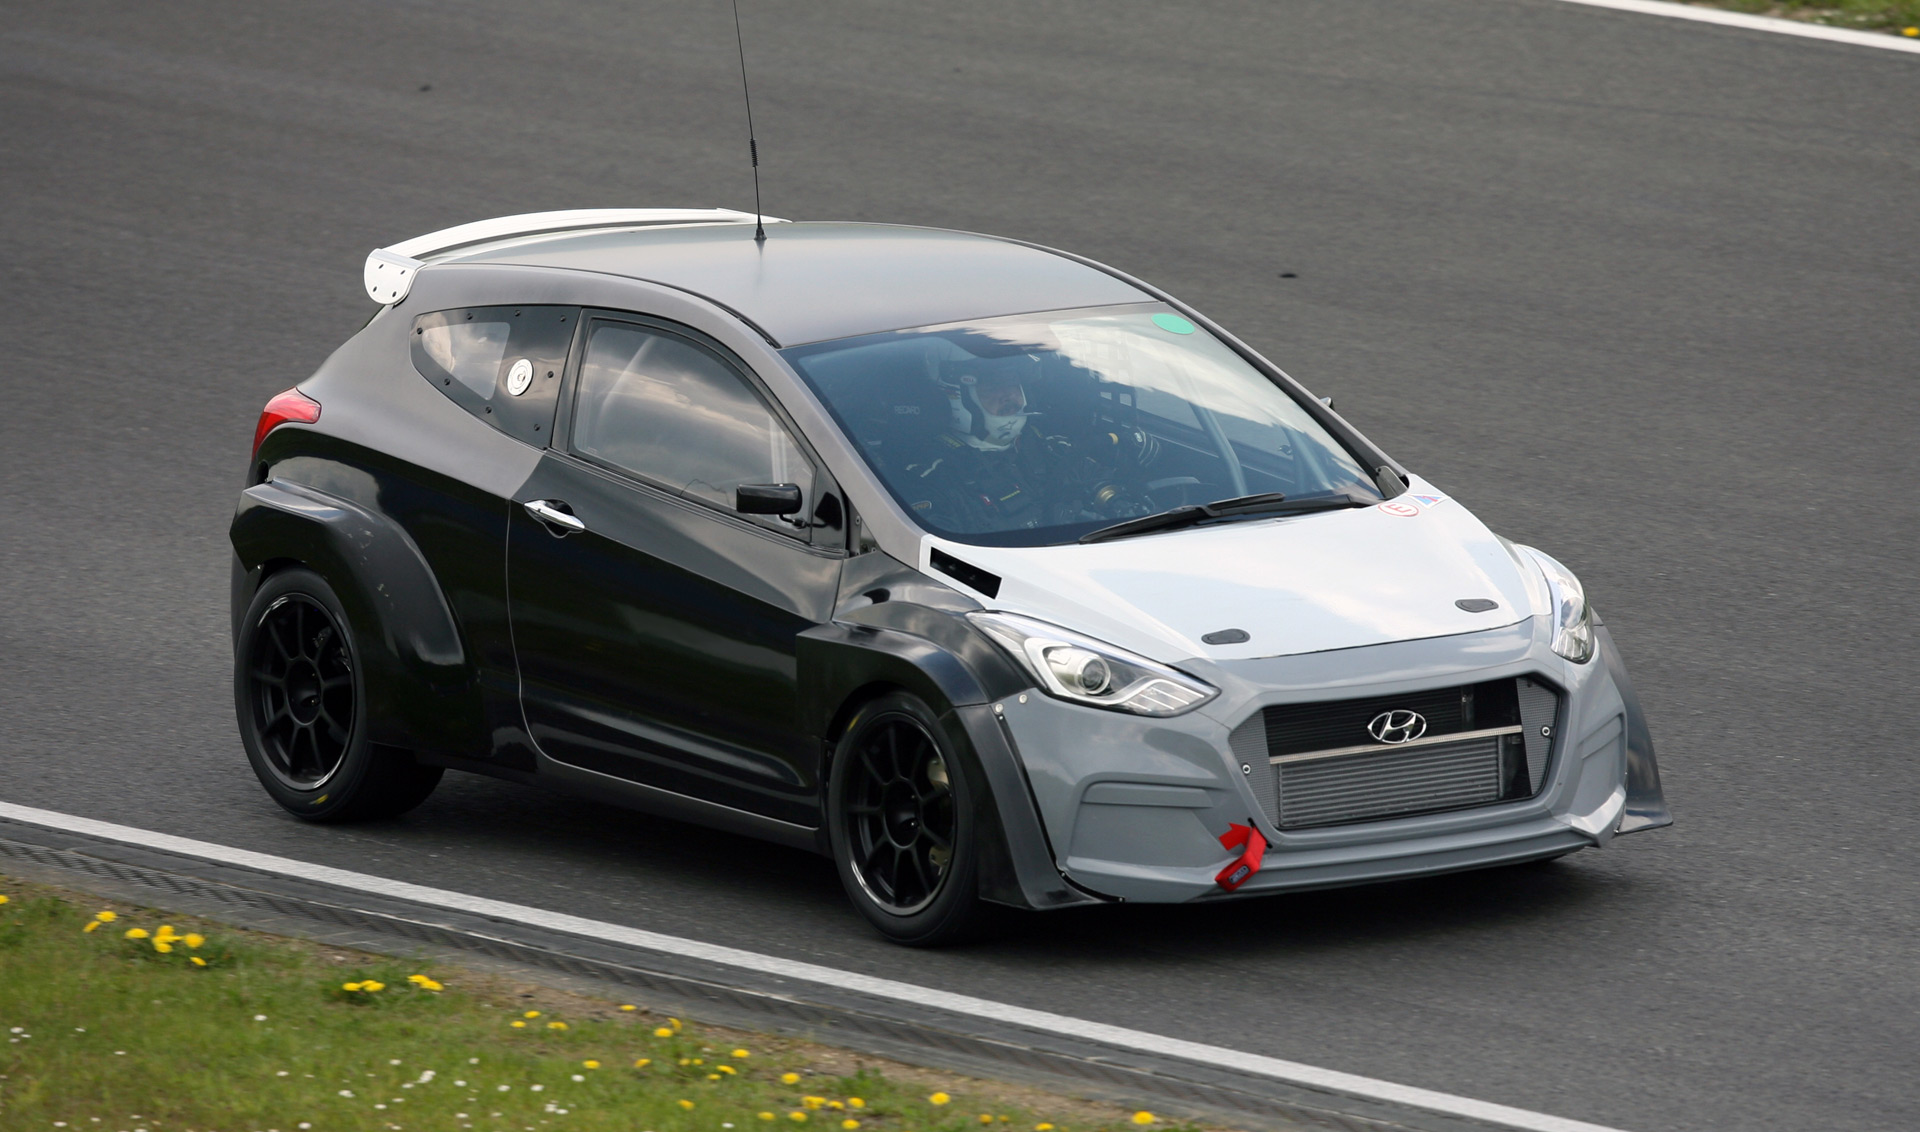 Hyundai I30 N Development Car To Tackle 2016 Nrburgring 24 Hours 2002 Beetle Door Wiring Diagram